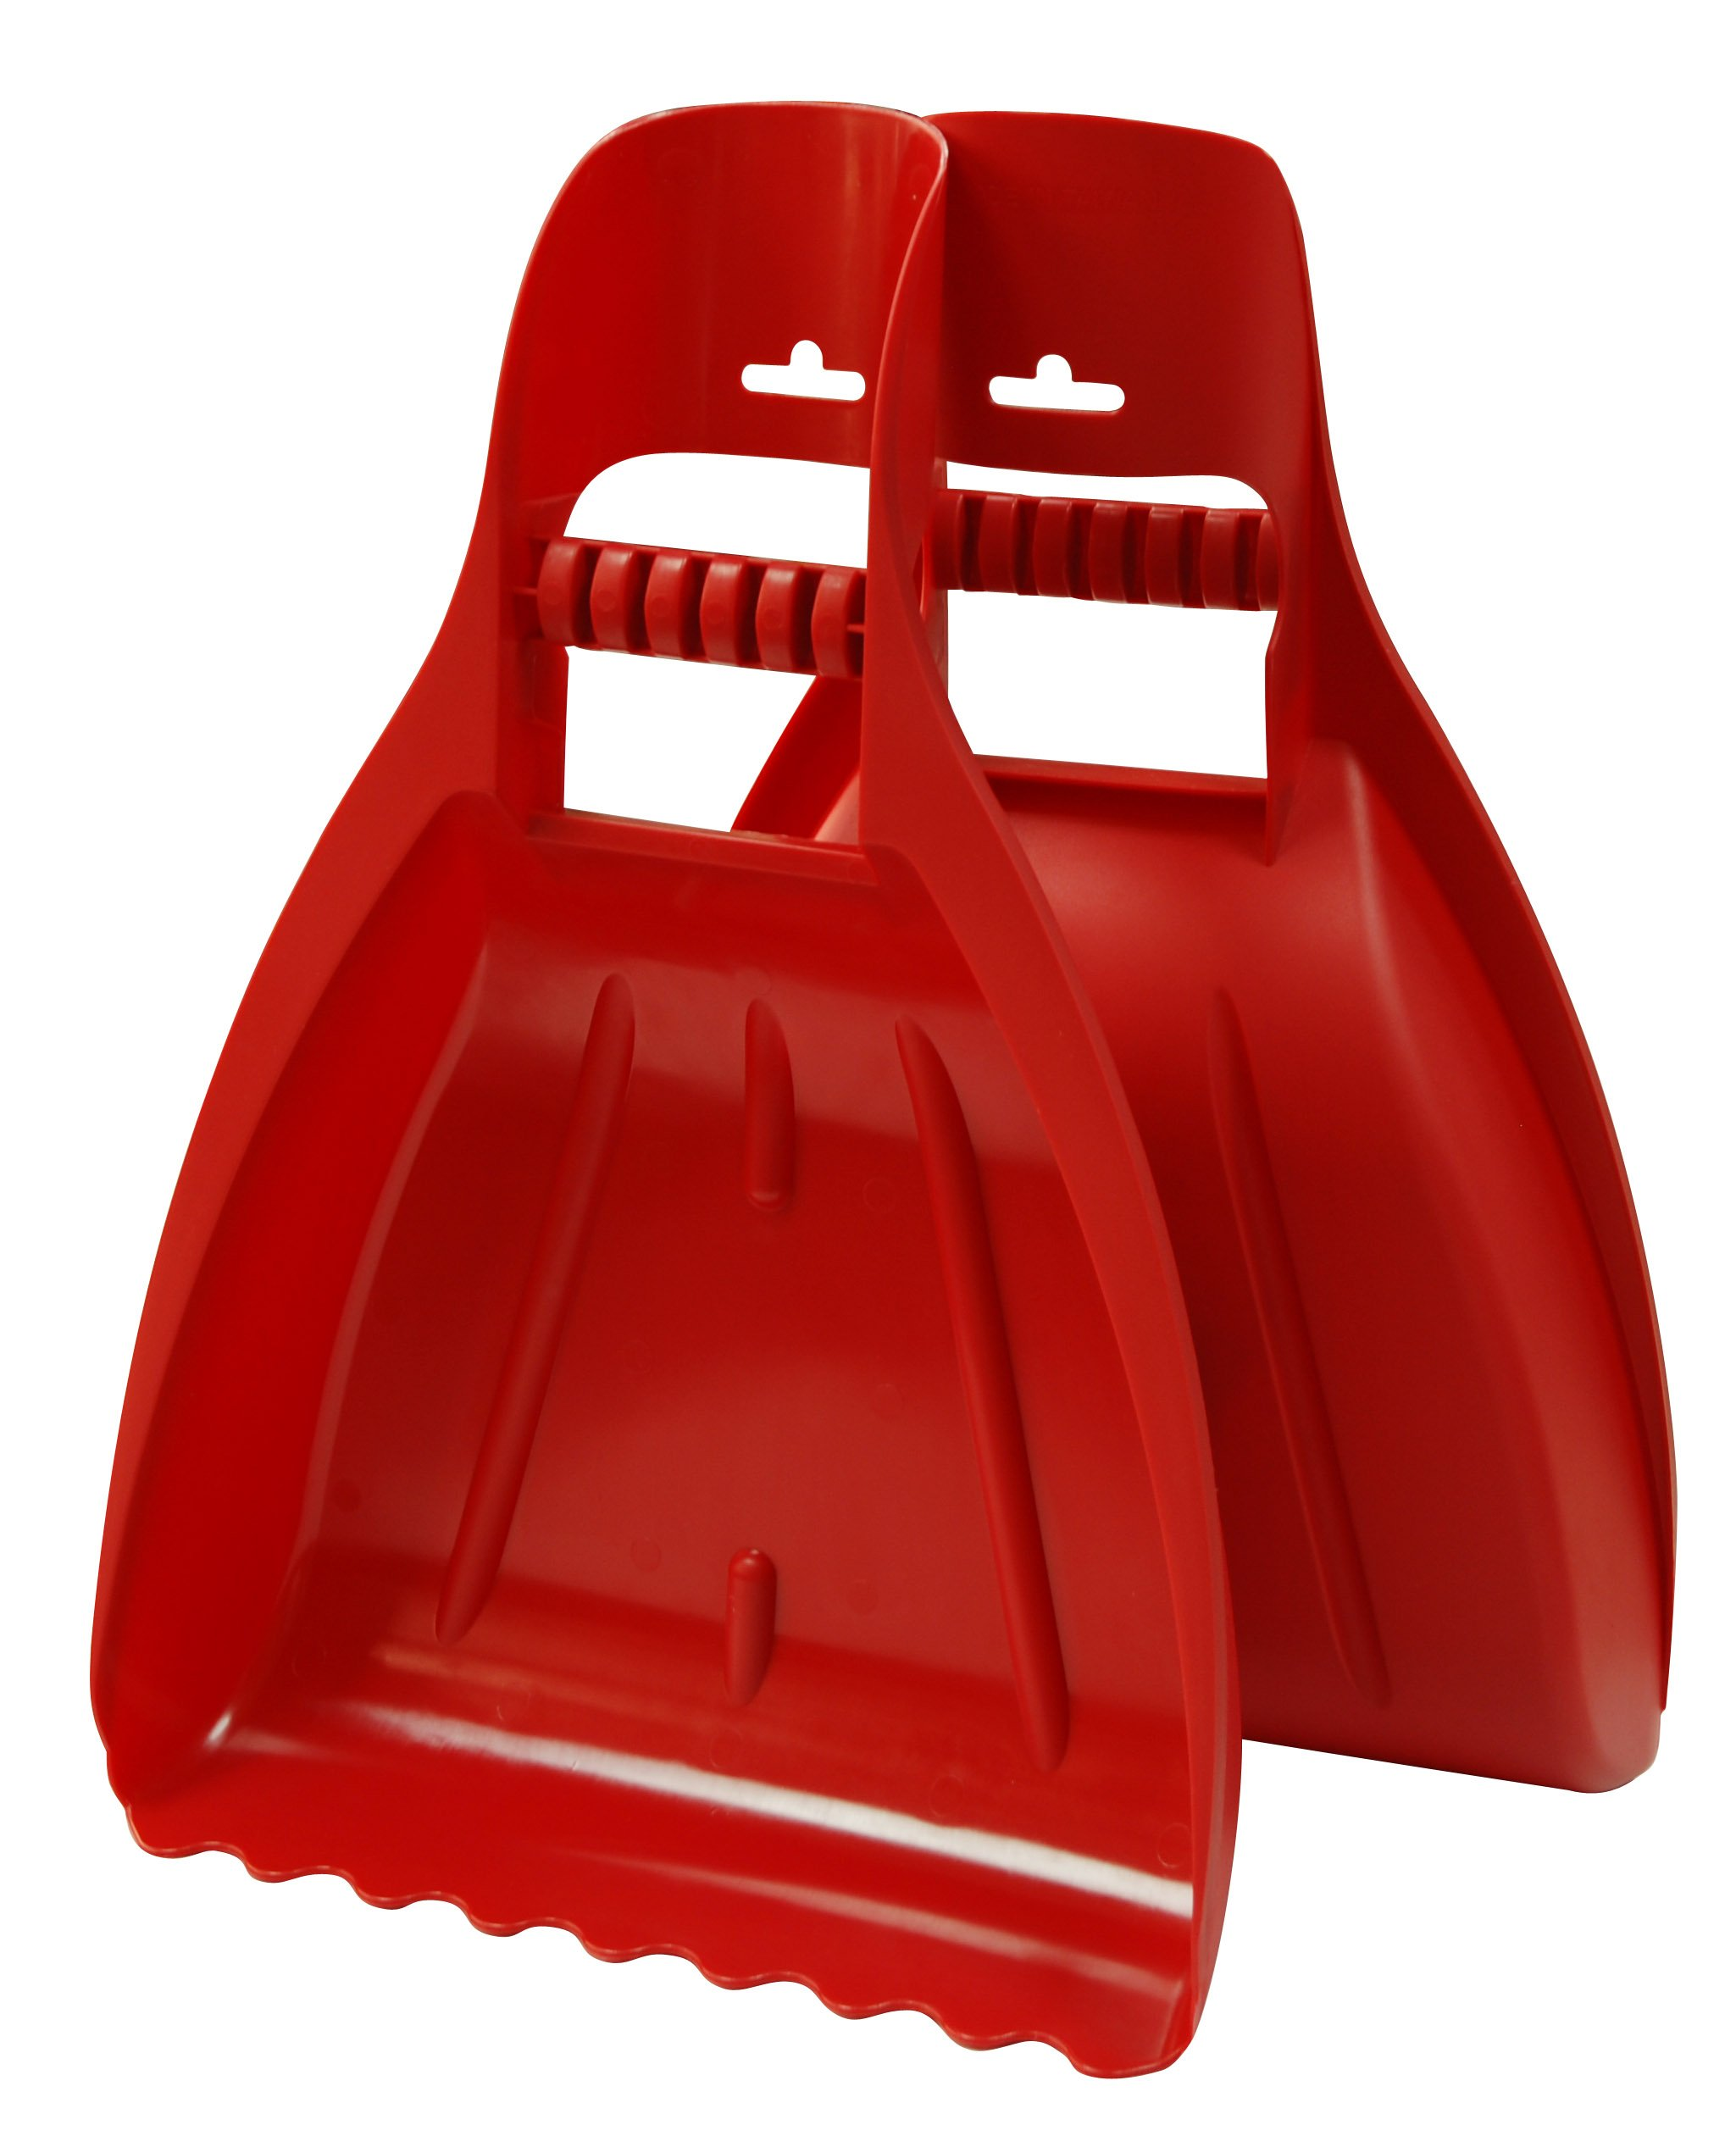 TABOR TOOLS LS12A Leaf Scoops, Rake Hands, Leaf Grabbers, Garden and Yard Hand Rakes for Picking Up Leaves, Grass Clippings, Debris and Garbage. (1 Pair)